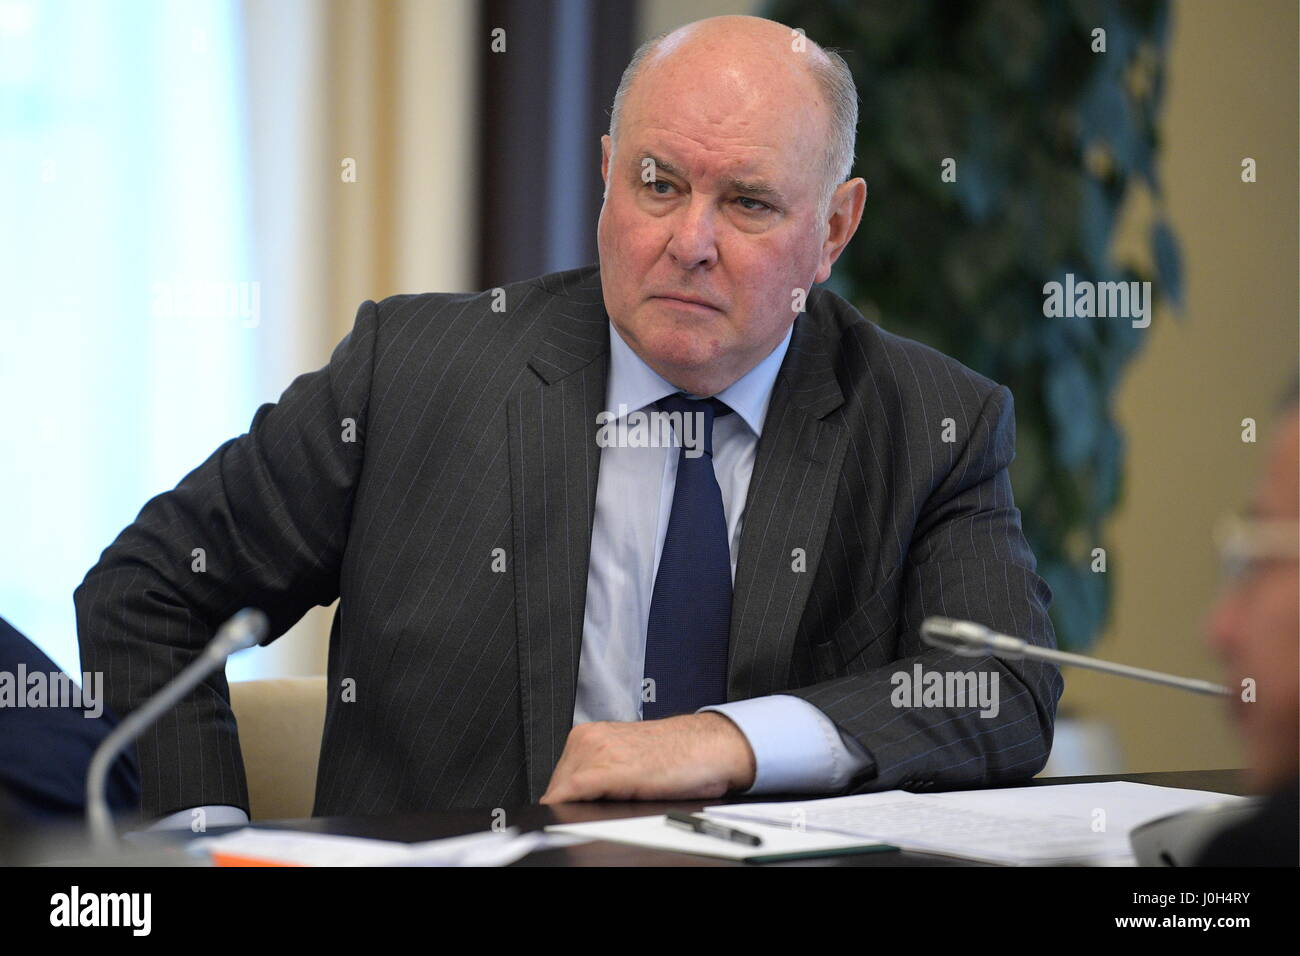 Moscow Region, Russia. 13th Apr, 2017. Russia's Deputy Foreign Minister Grigory Karasin seen during a meeting - Stock Image